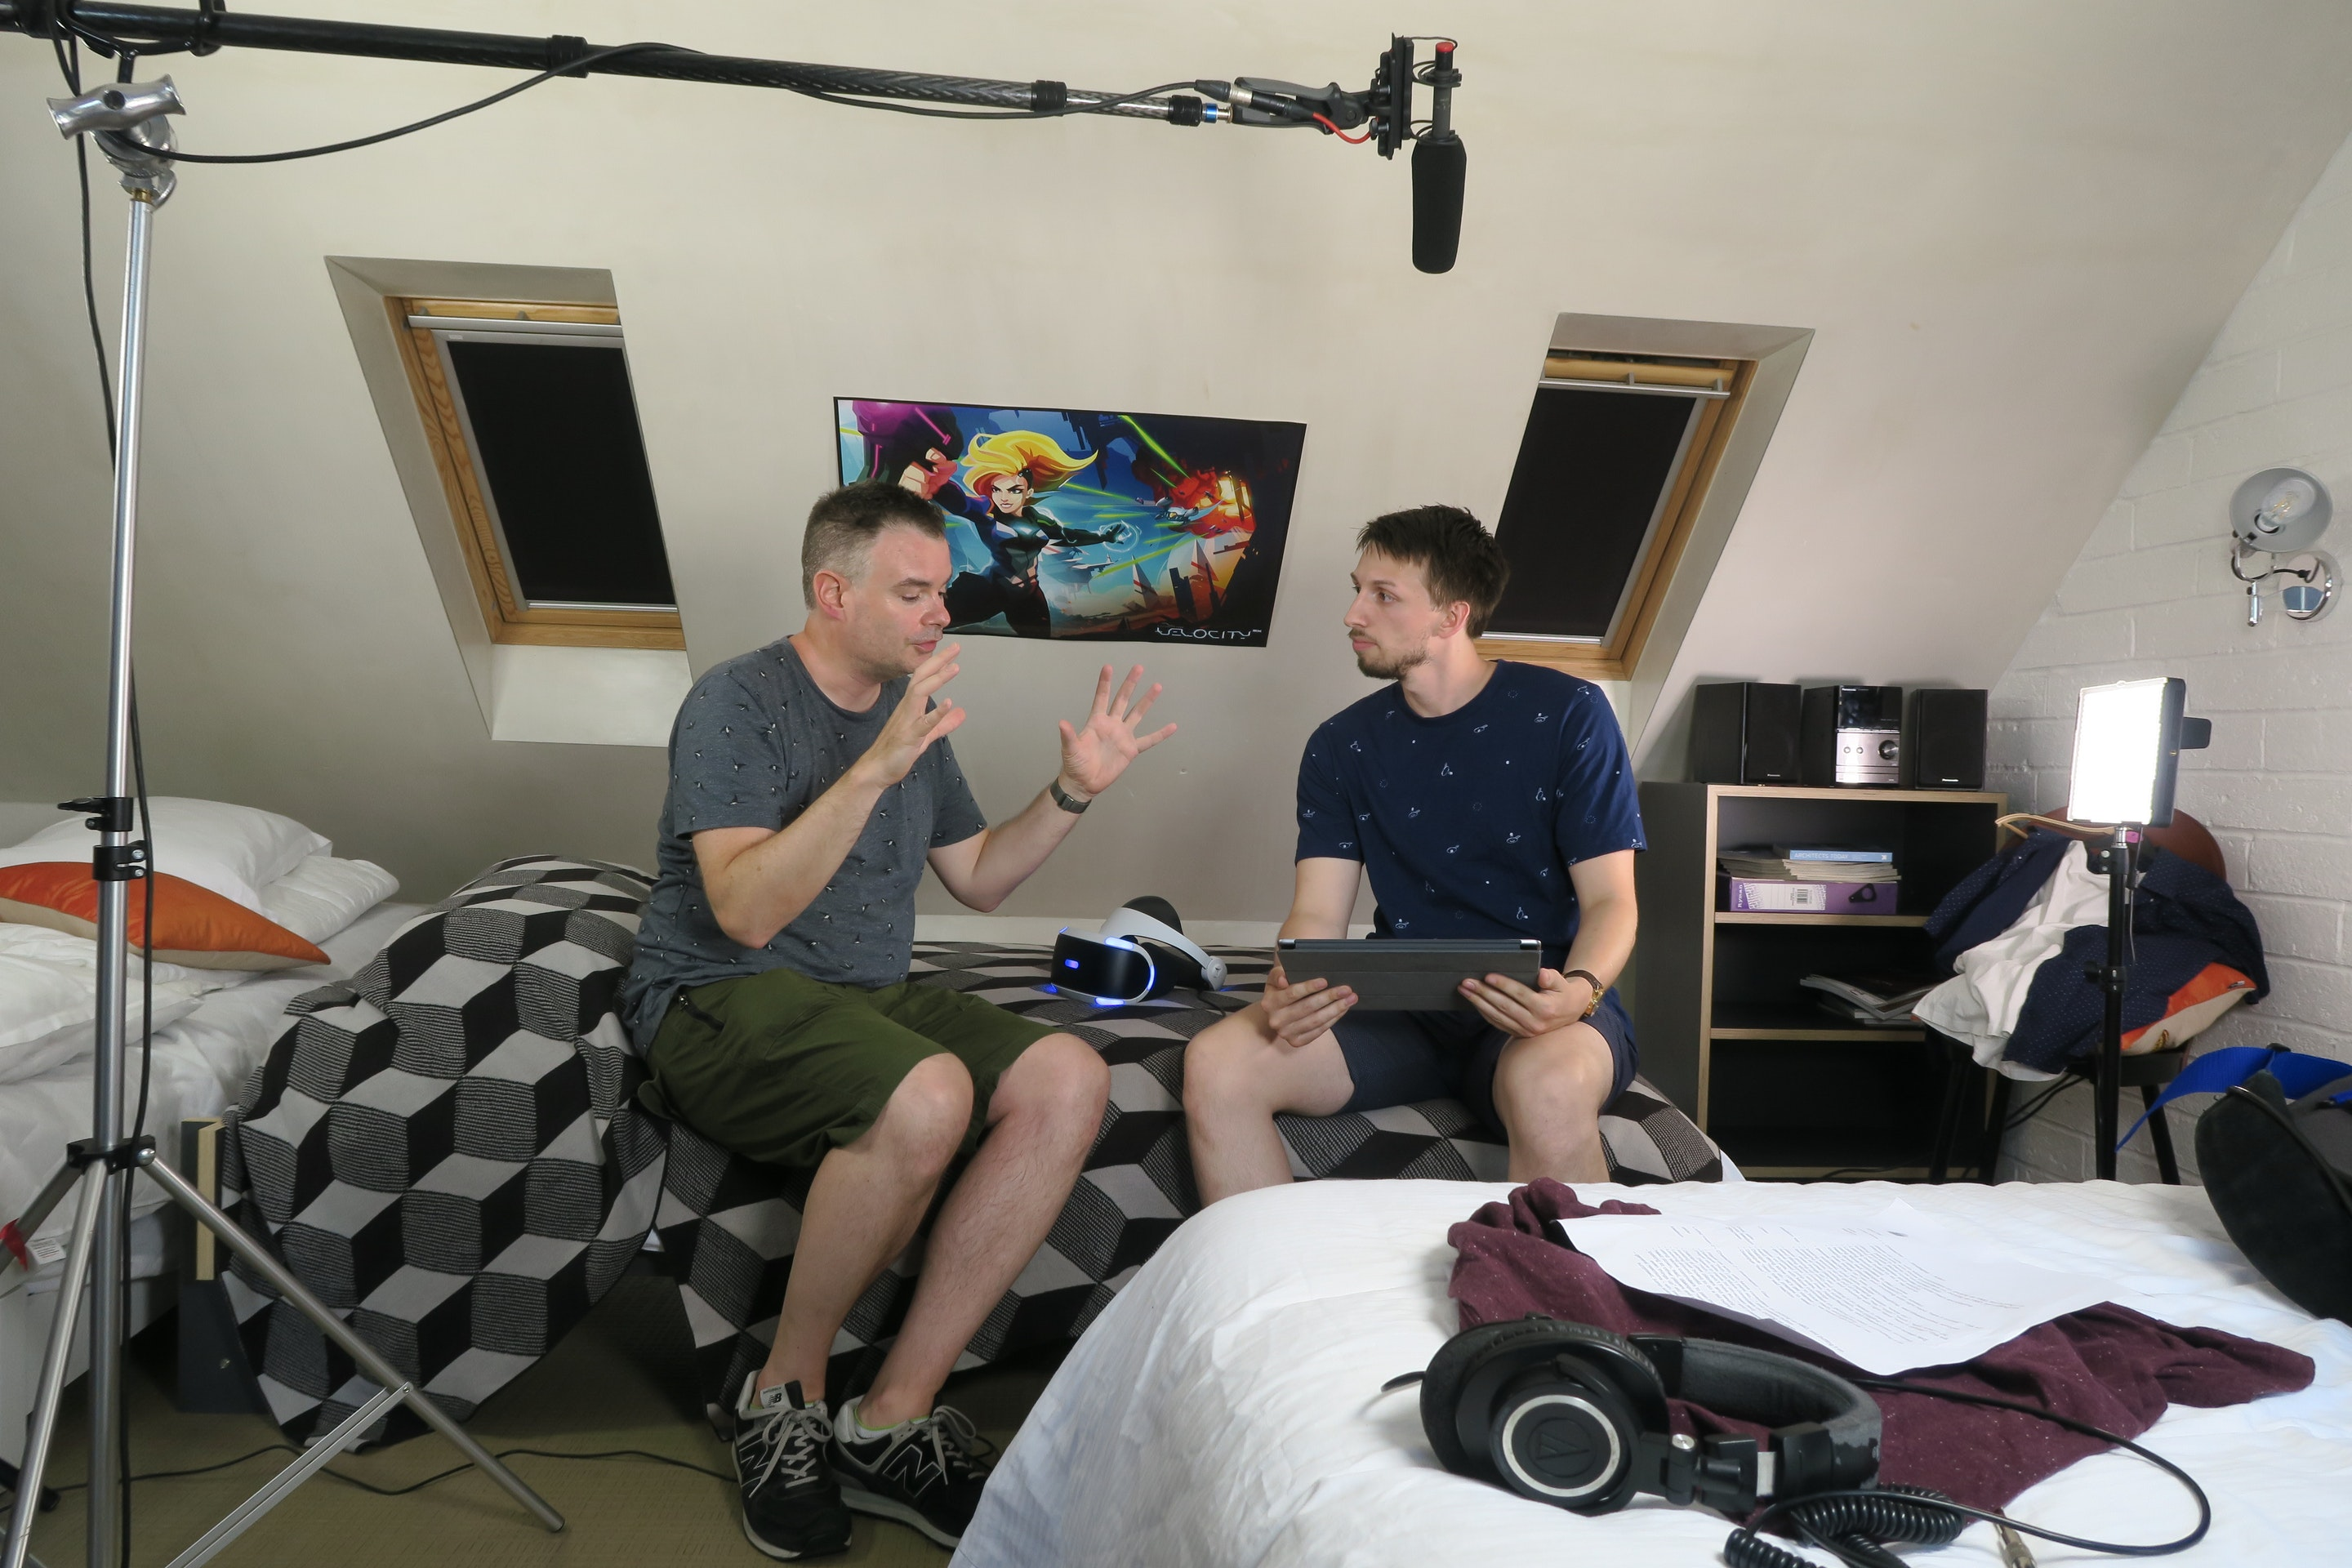 Game and UI artist Paul Simpson describbes the new Futurlab Sony Playstation VR game to actor Adam Leadbitter, behind the scenes on the Big Egg Futurlab trailer shoot